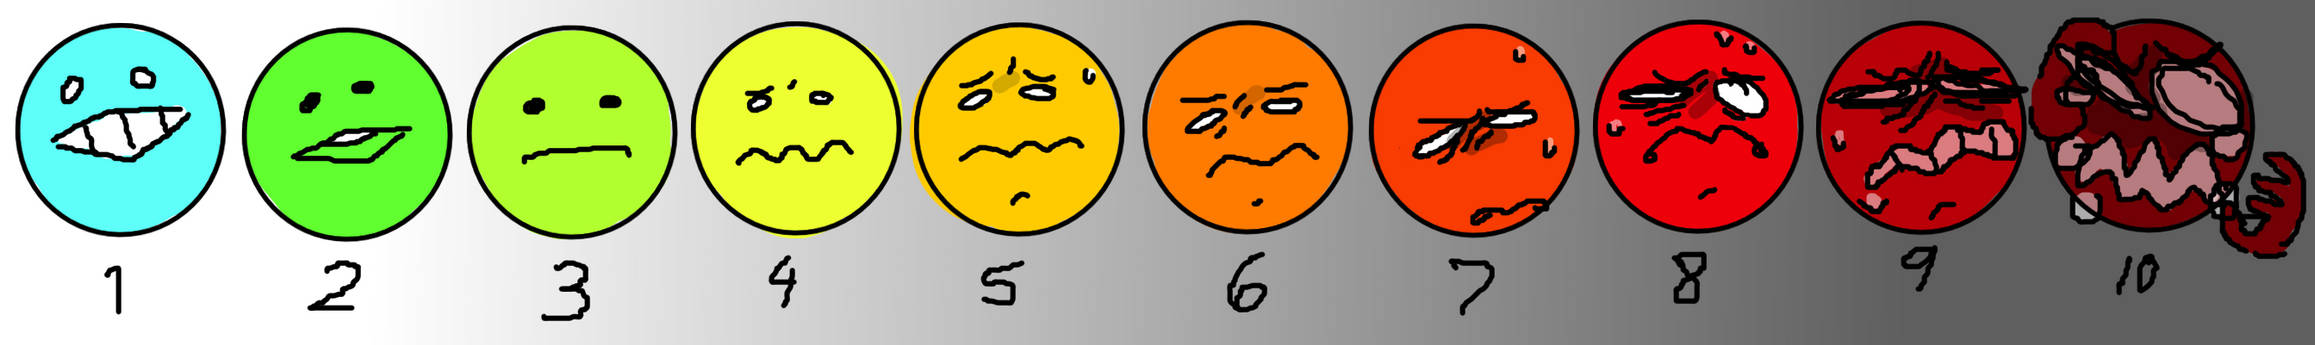 A simple mental health pain scale